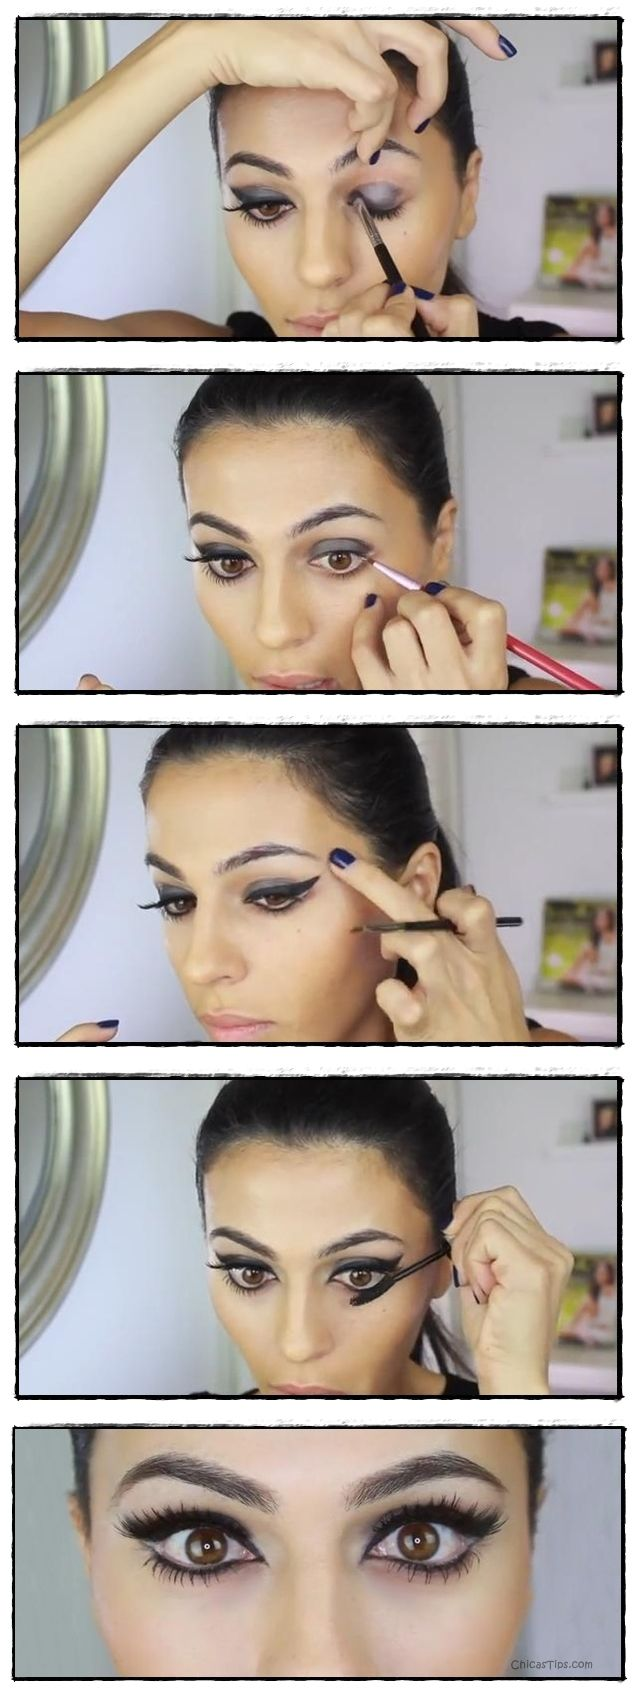 Maquillaje para ojos grandes http://chicastips.com/maquillaje-para-ojos-grandes/